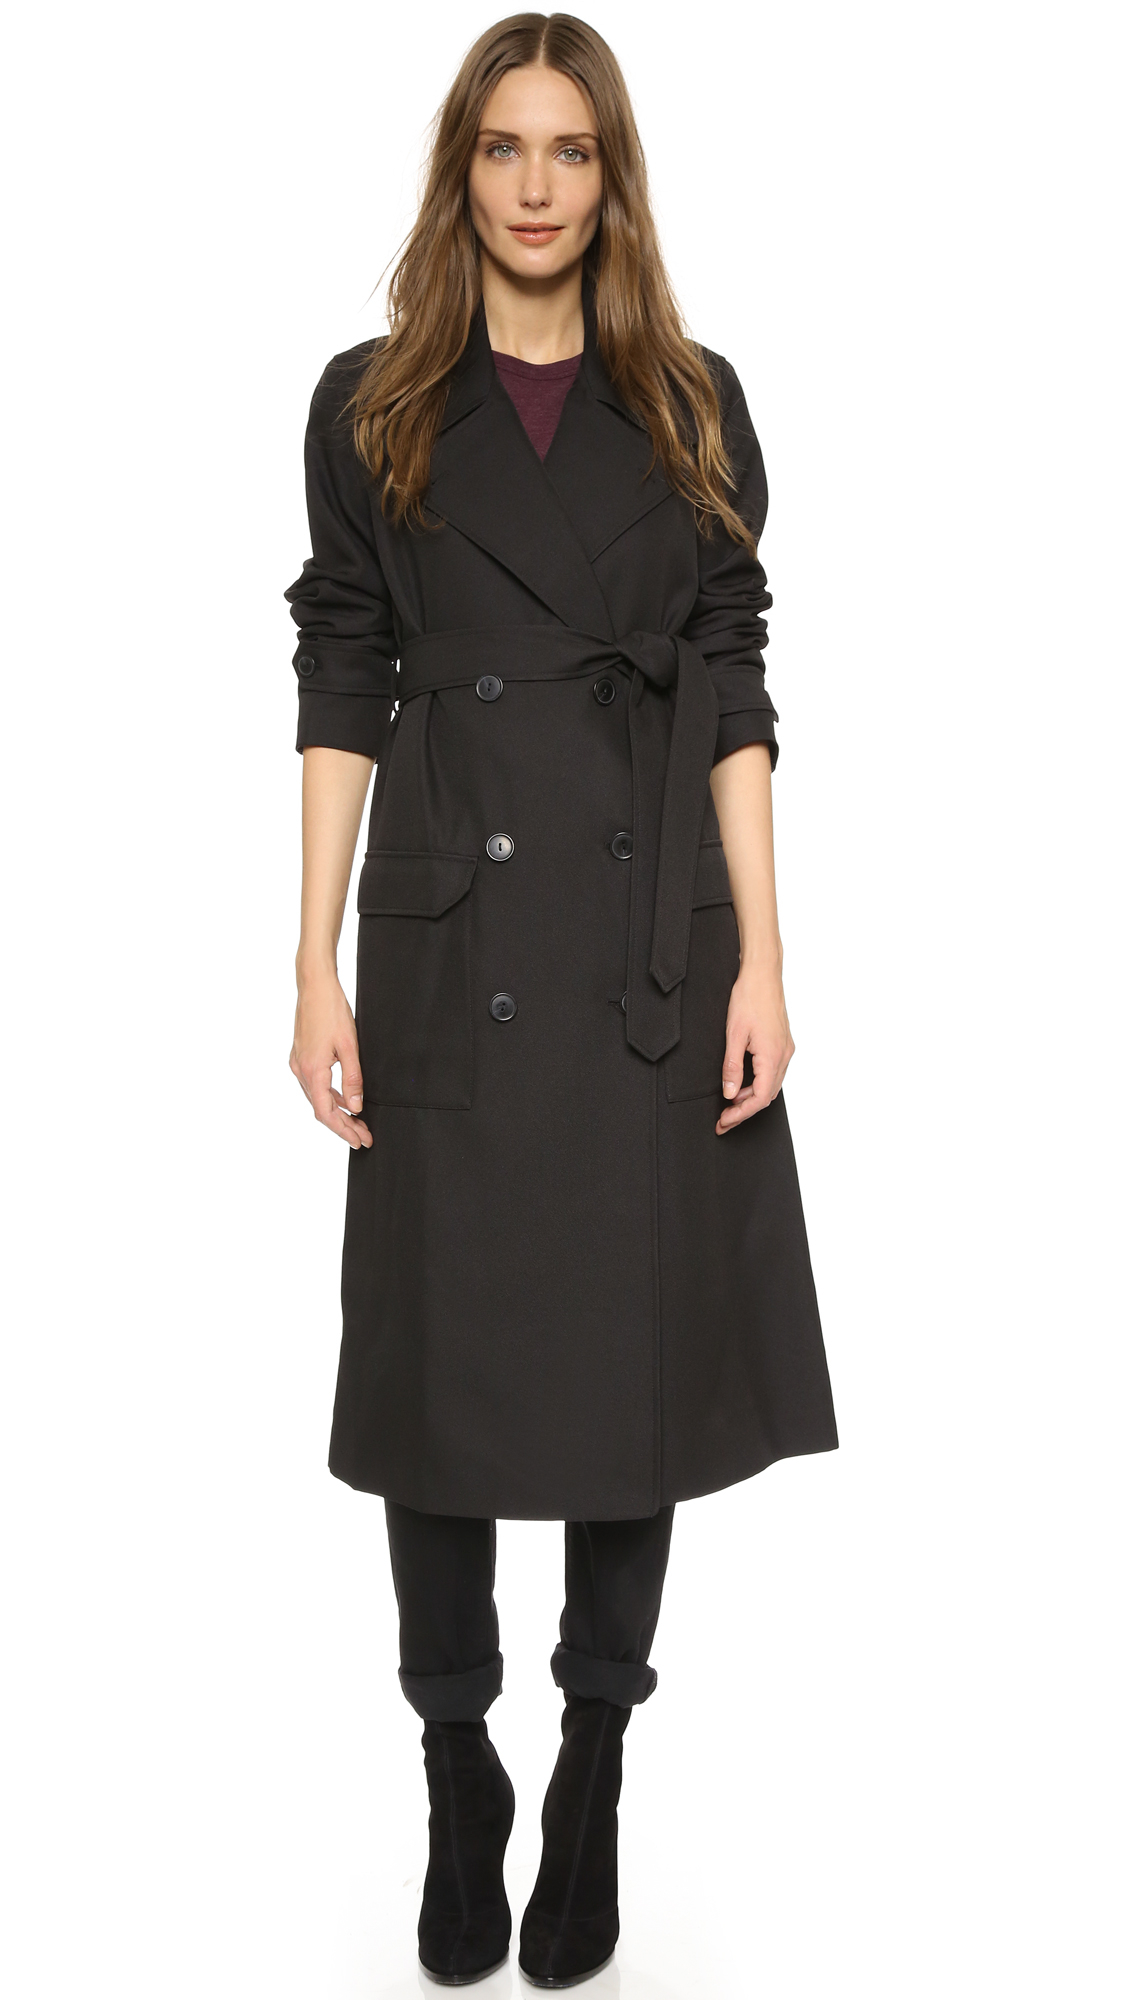 lyst t by alexander wang sleek twill trench coat in black. Black Bedroom Furniture Sets. Home Design Ideas